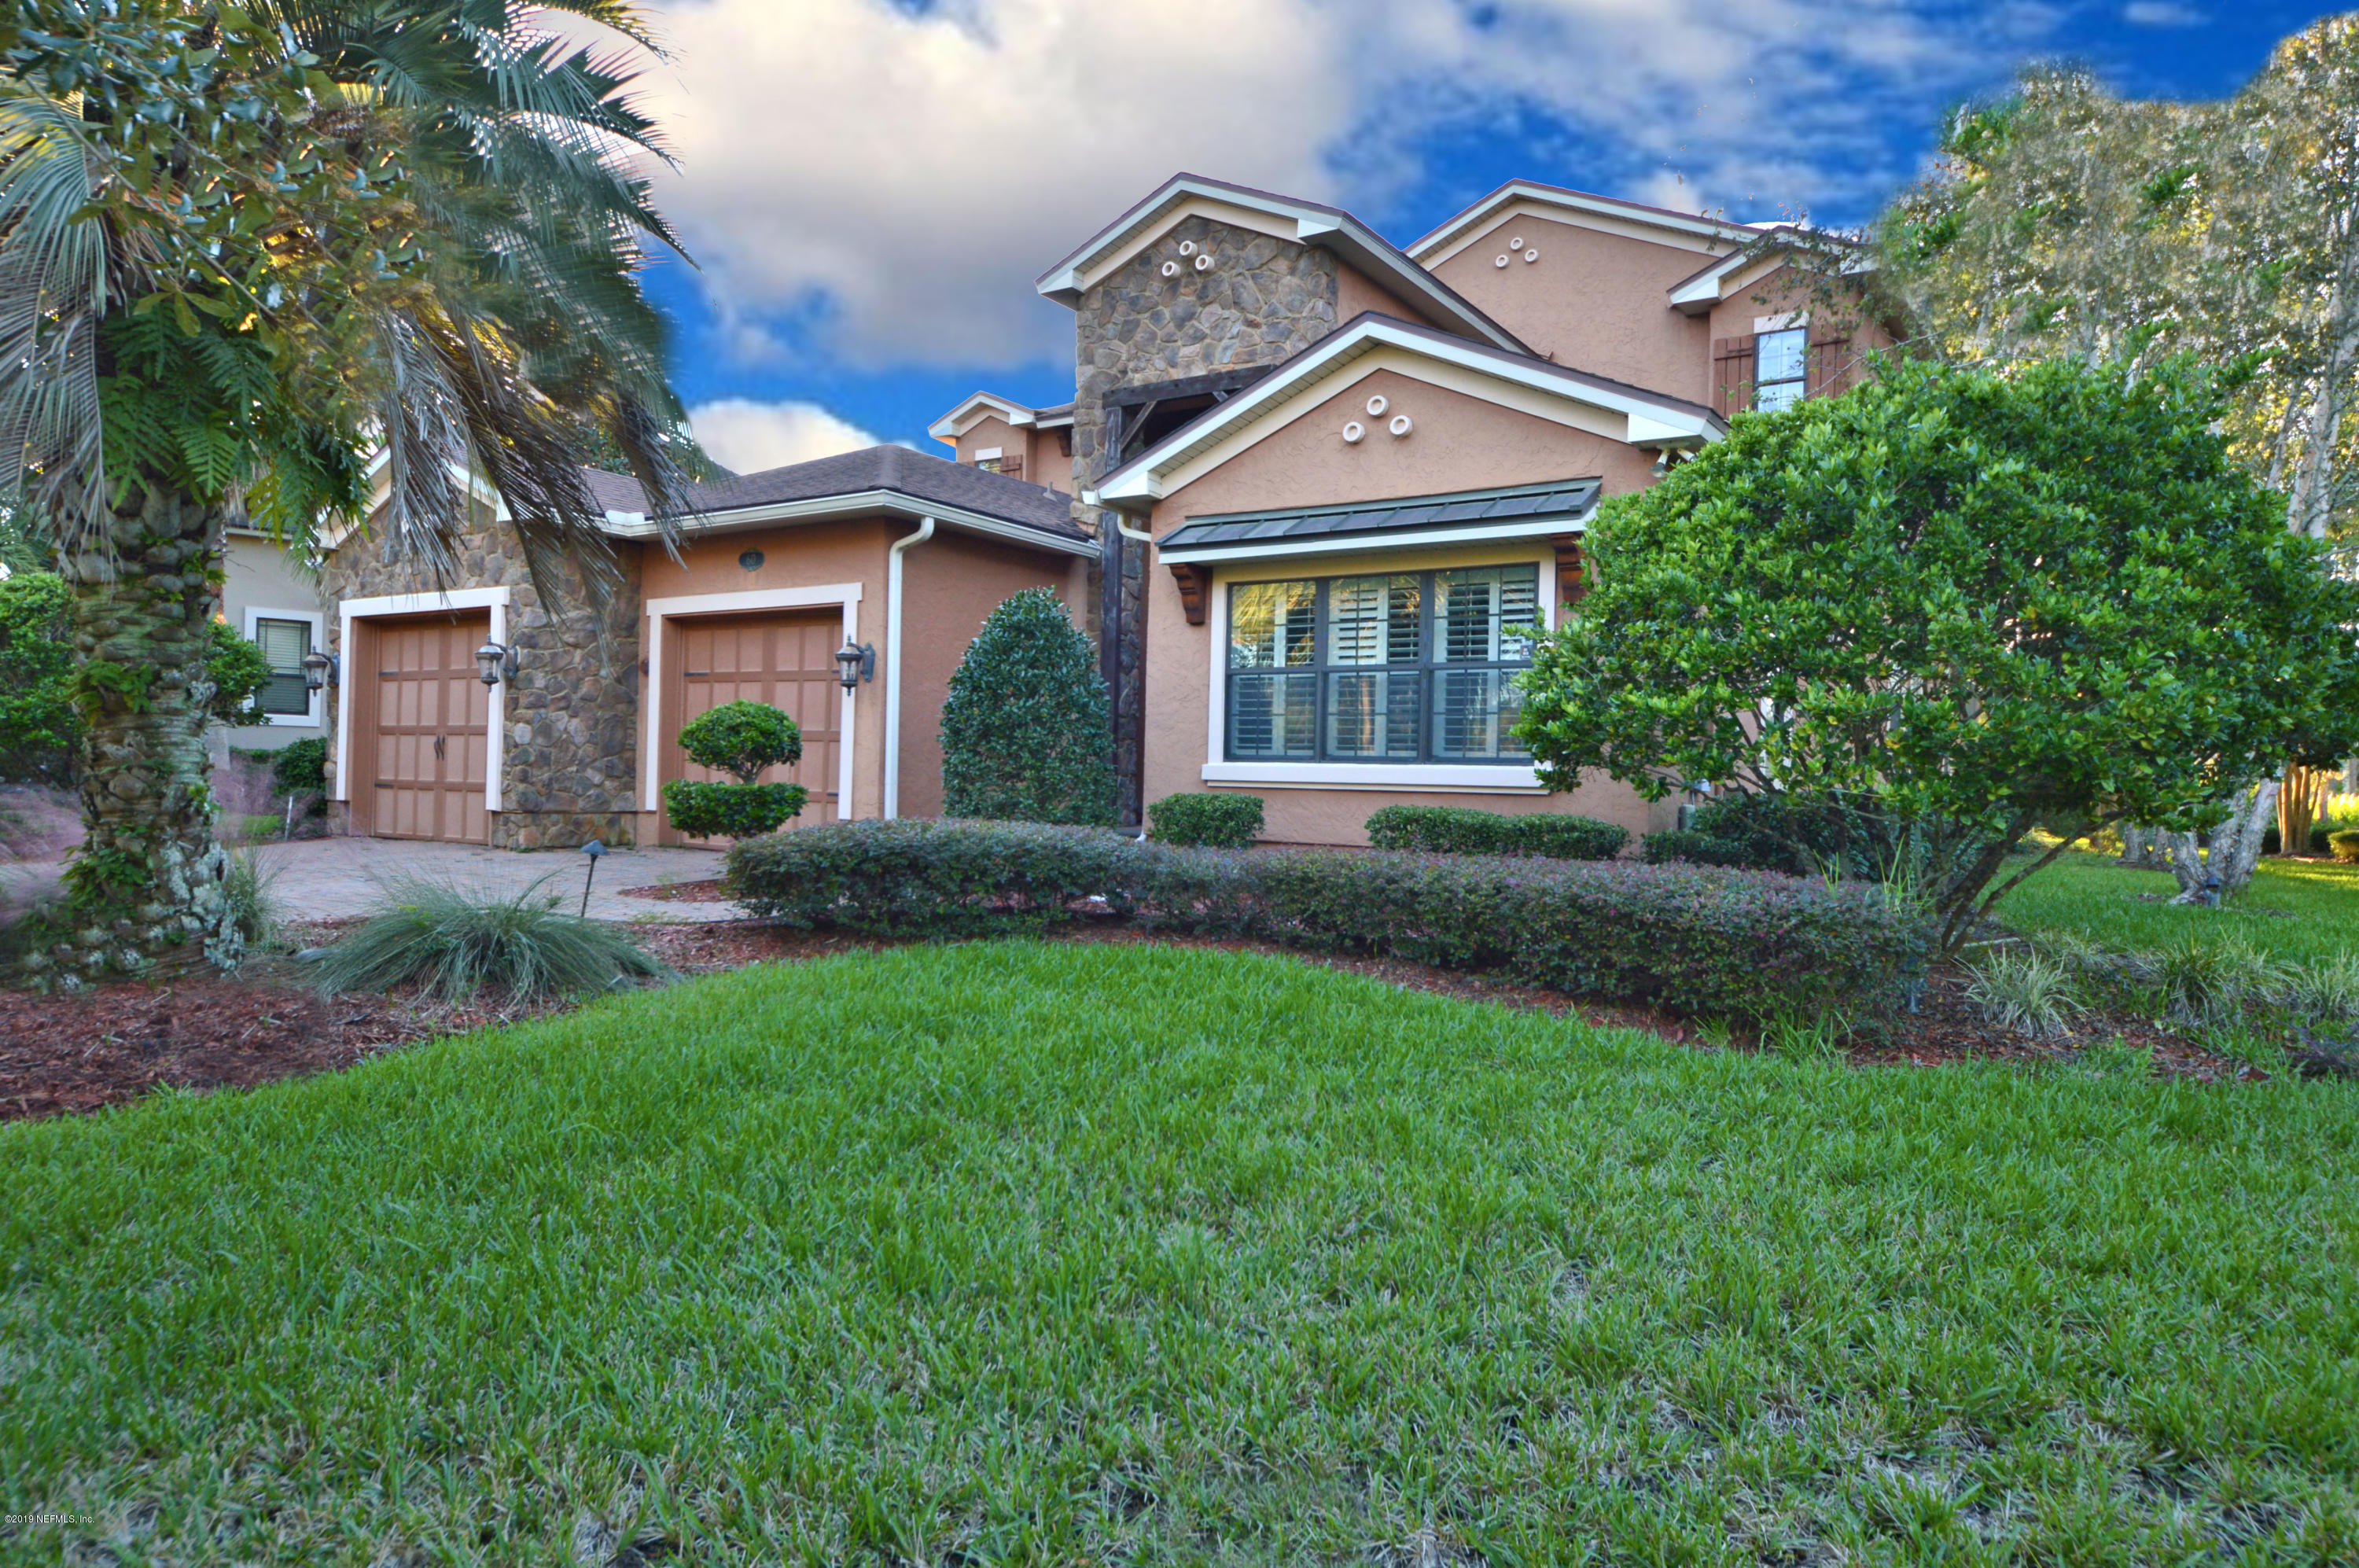 60 TORCIDO, ST AUGUSTINE, FLORIDA 32095, 4 Bedrooms Bedrooms, ,4 BathroomsBathrooms,Residential - single family,For sale,TORCIDO,980325